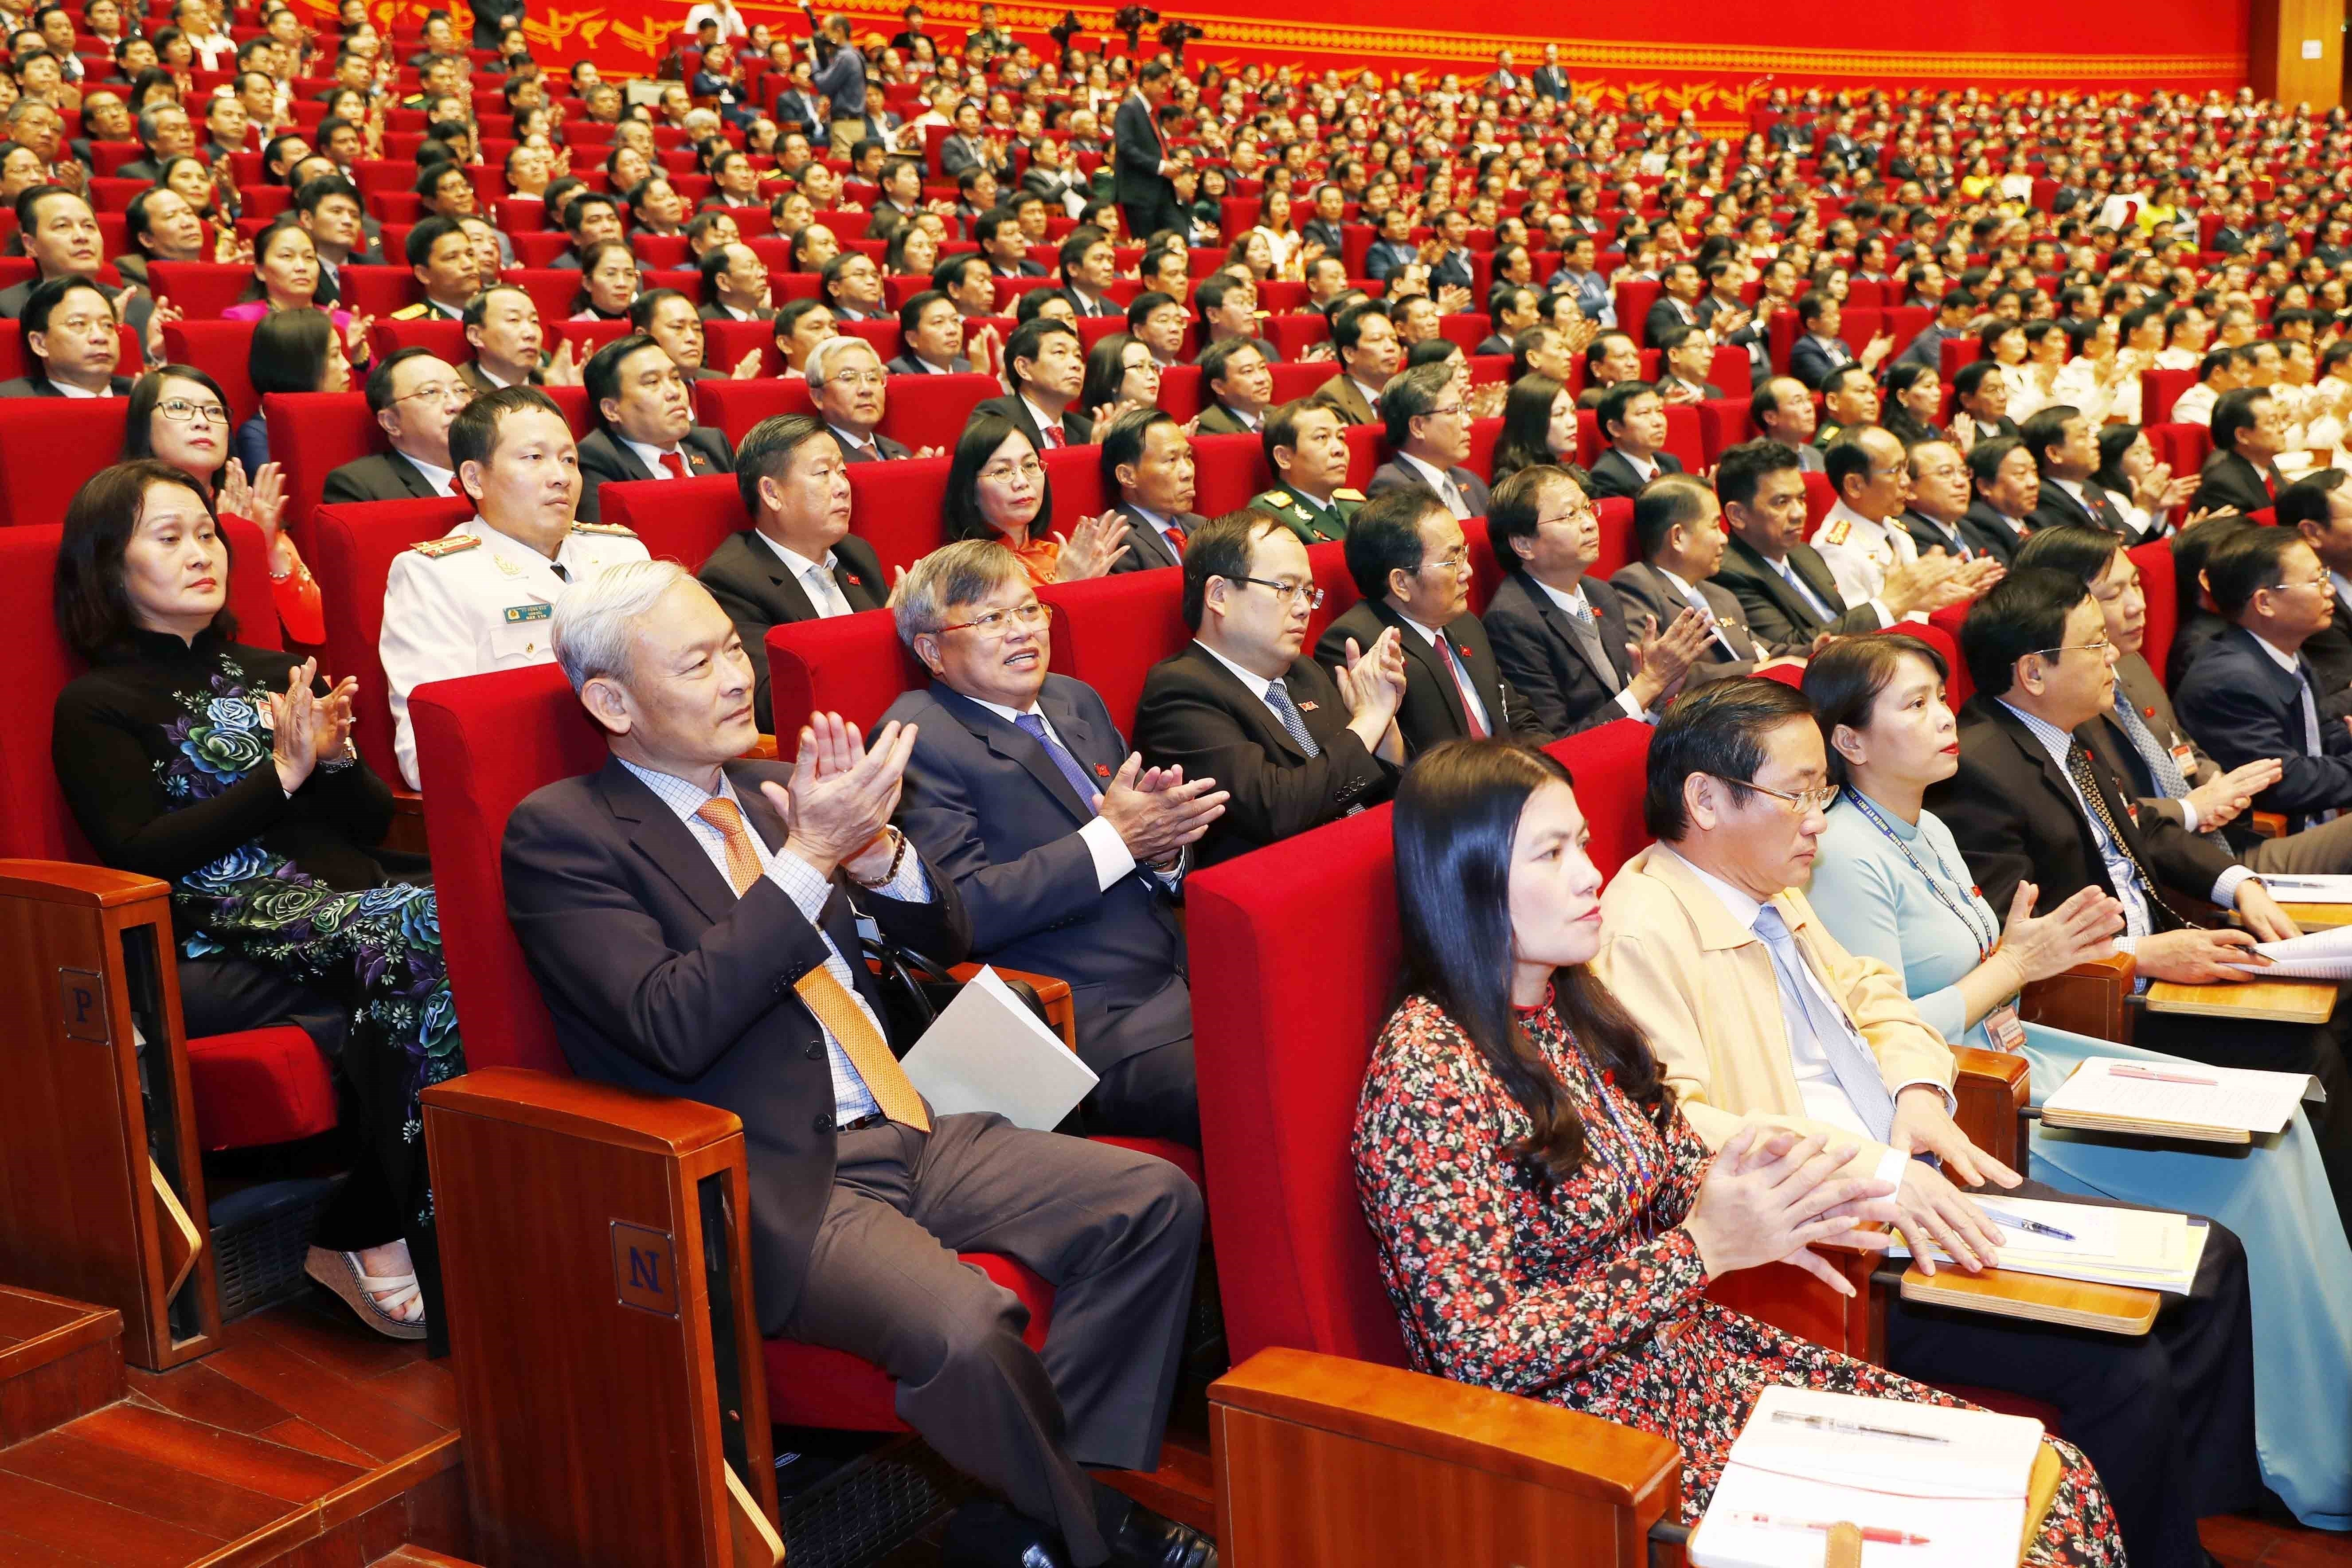 Congress delegates discuss documents on third working day hinh anh 4